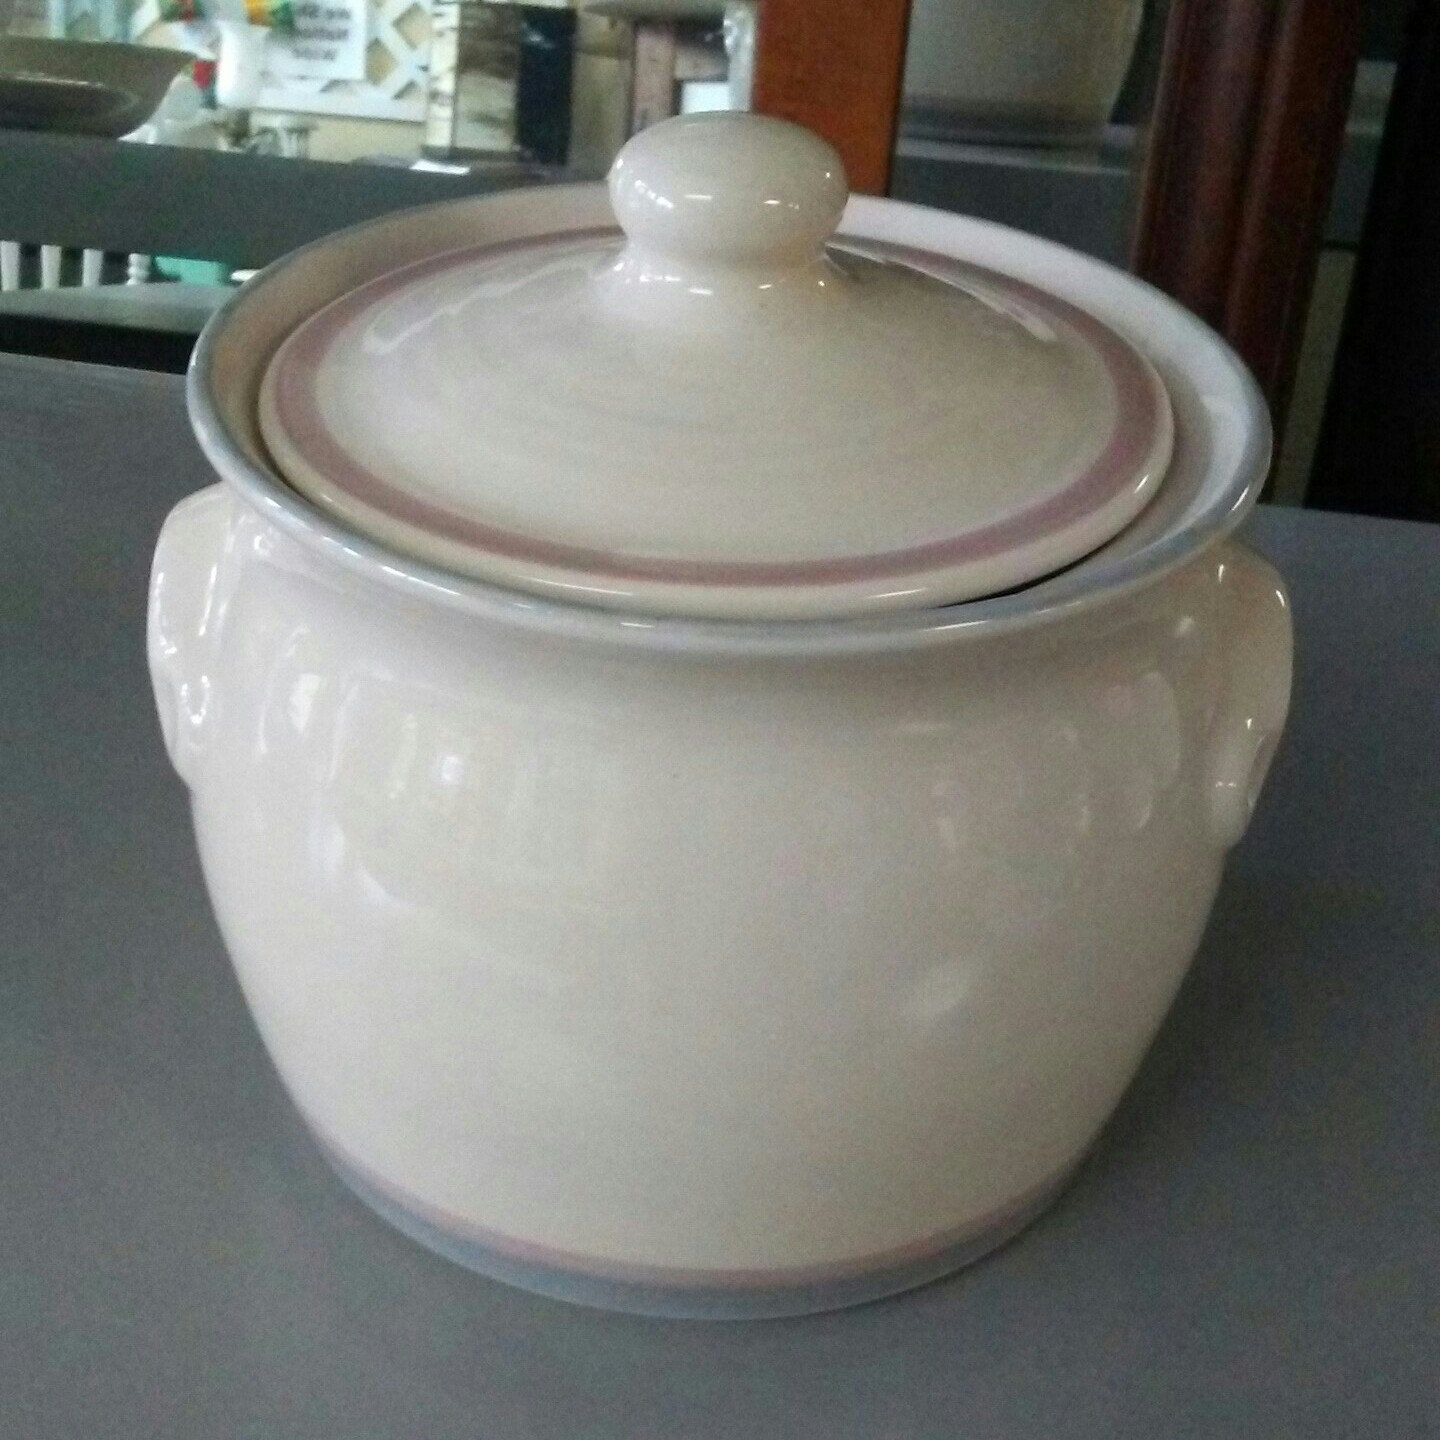 Pfaltzgraff cookie jar for sale in our Etsy shop. Get your farmhouse style on.